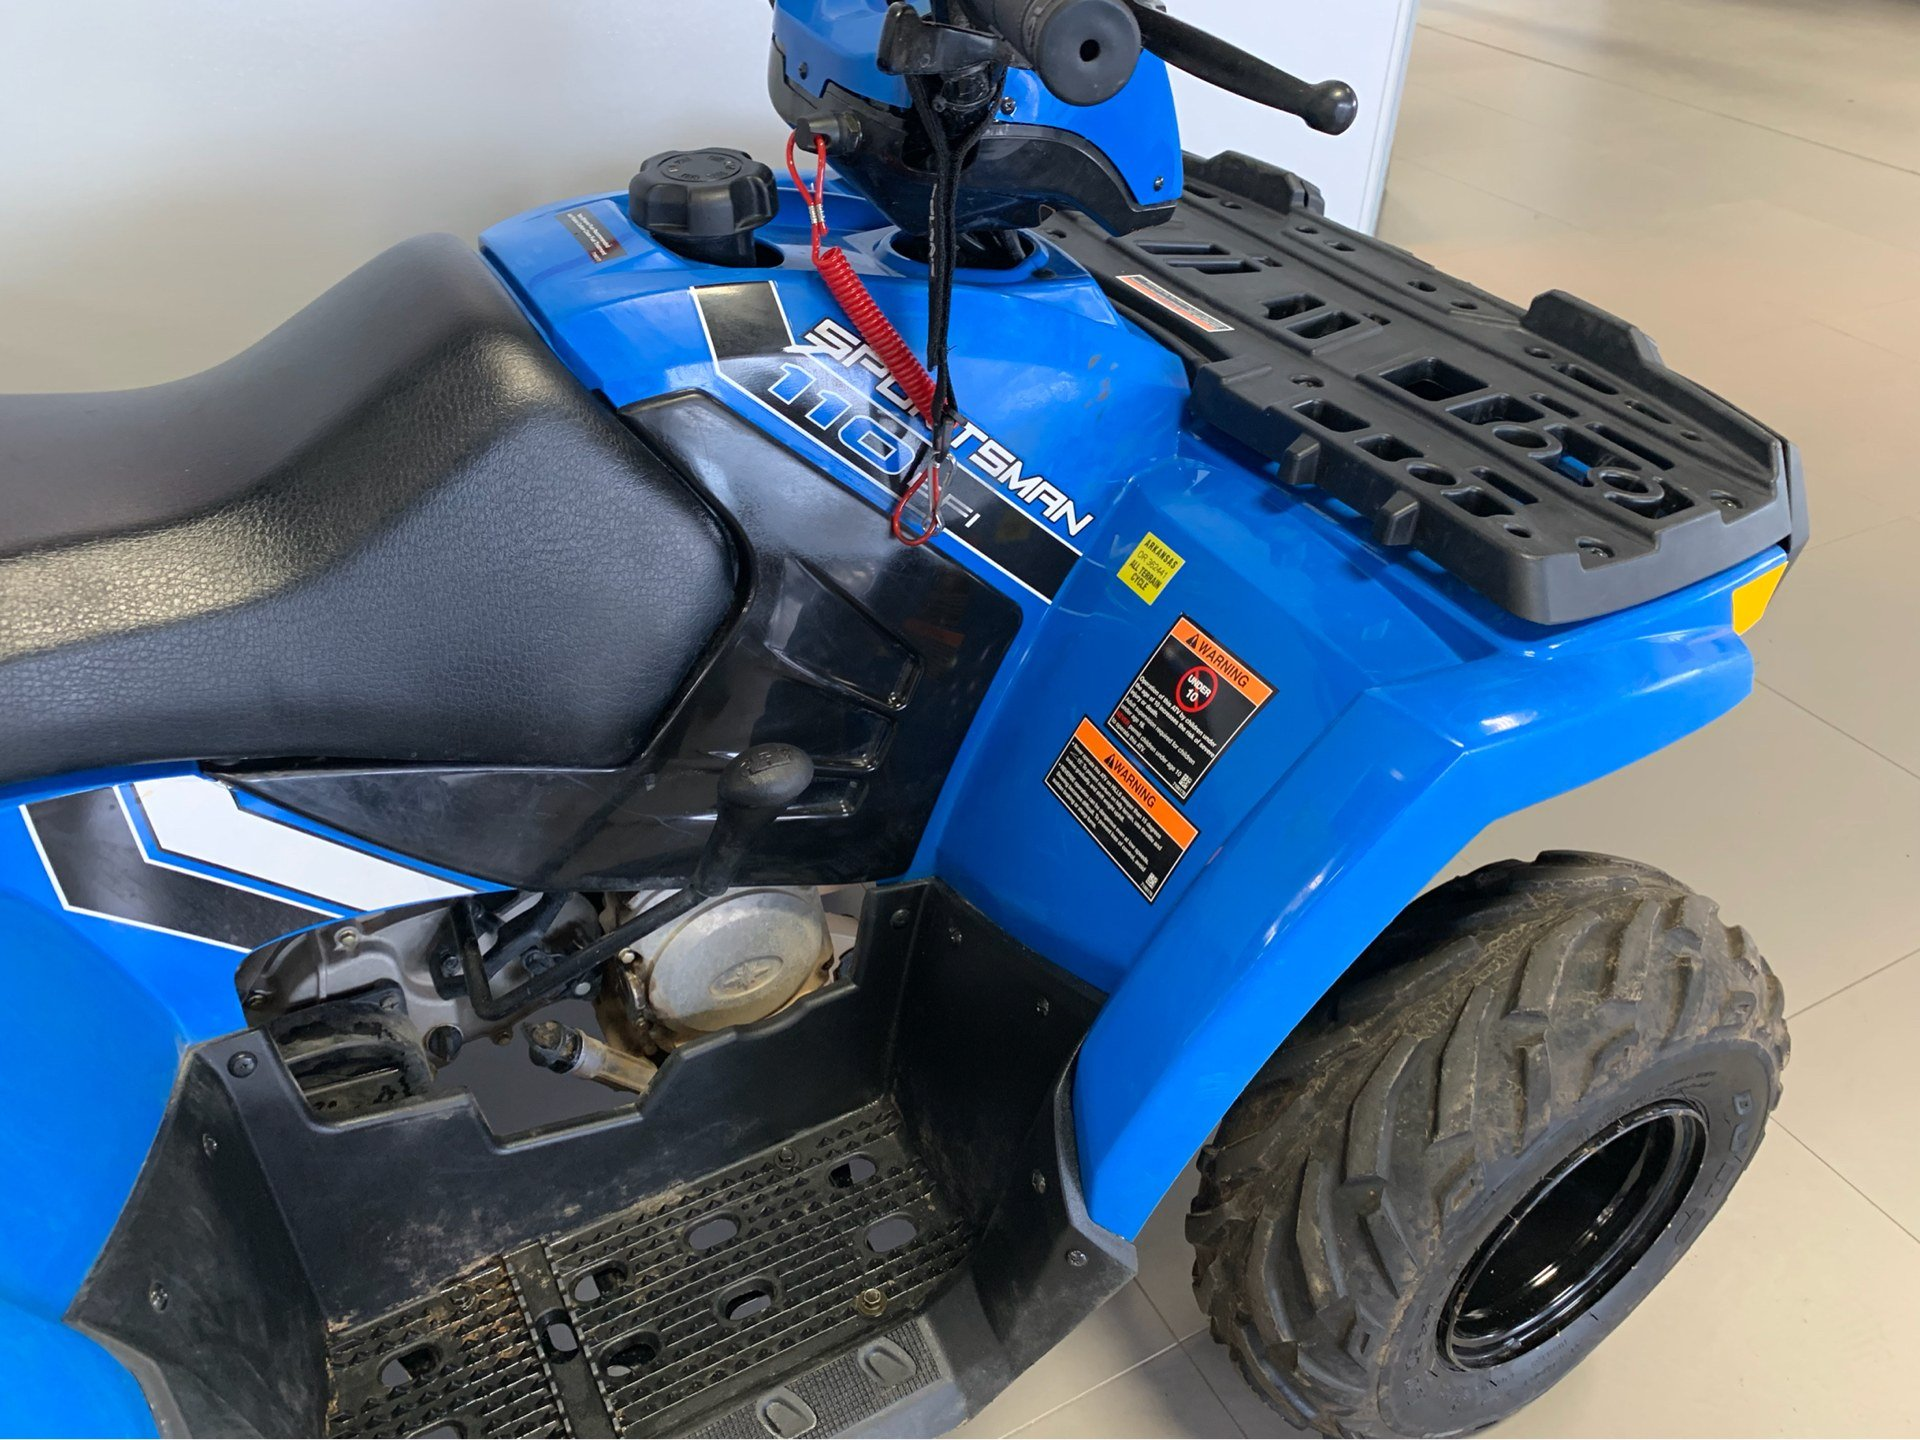 2019 Polaris Sportsman 110 EFI in Springfield, Missouri - Photo 12